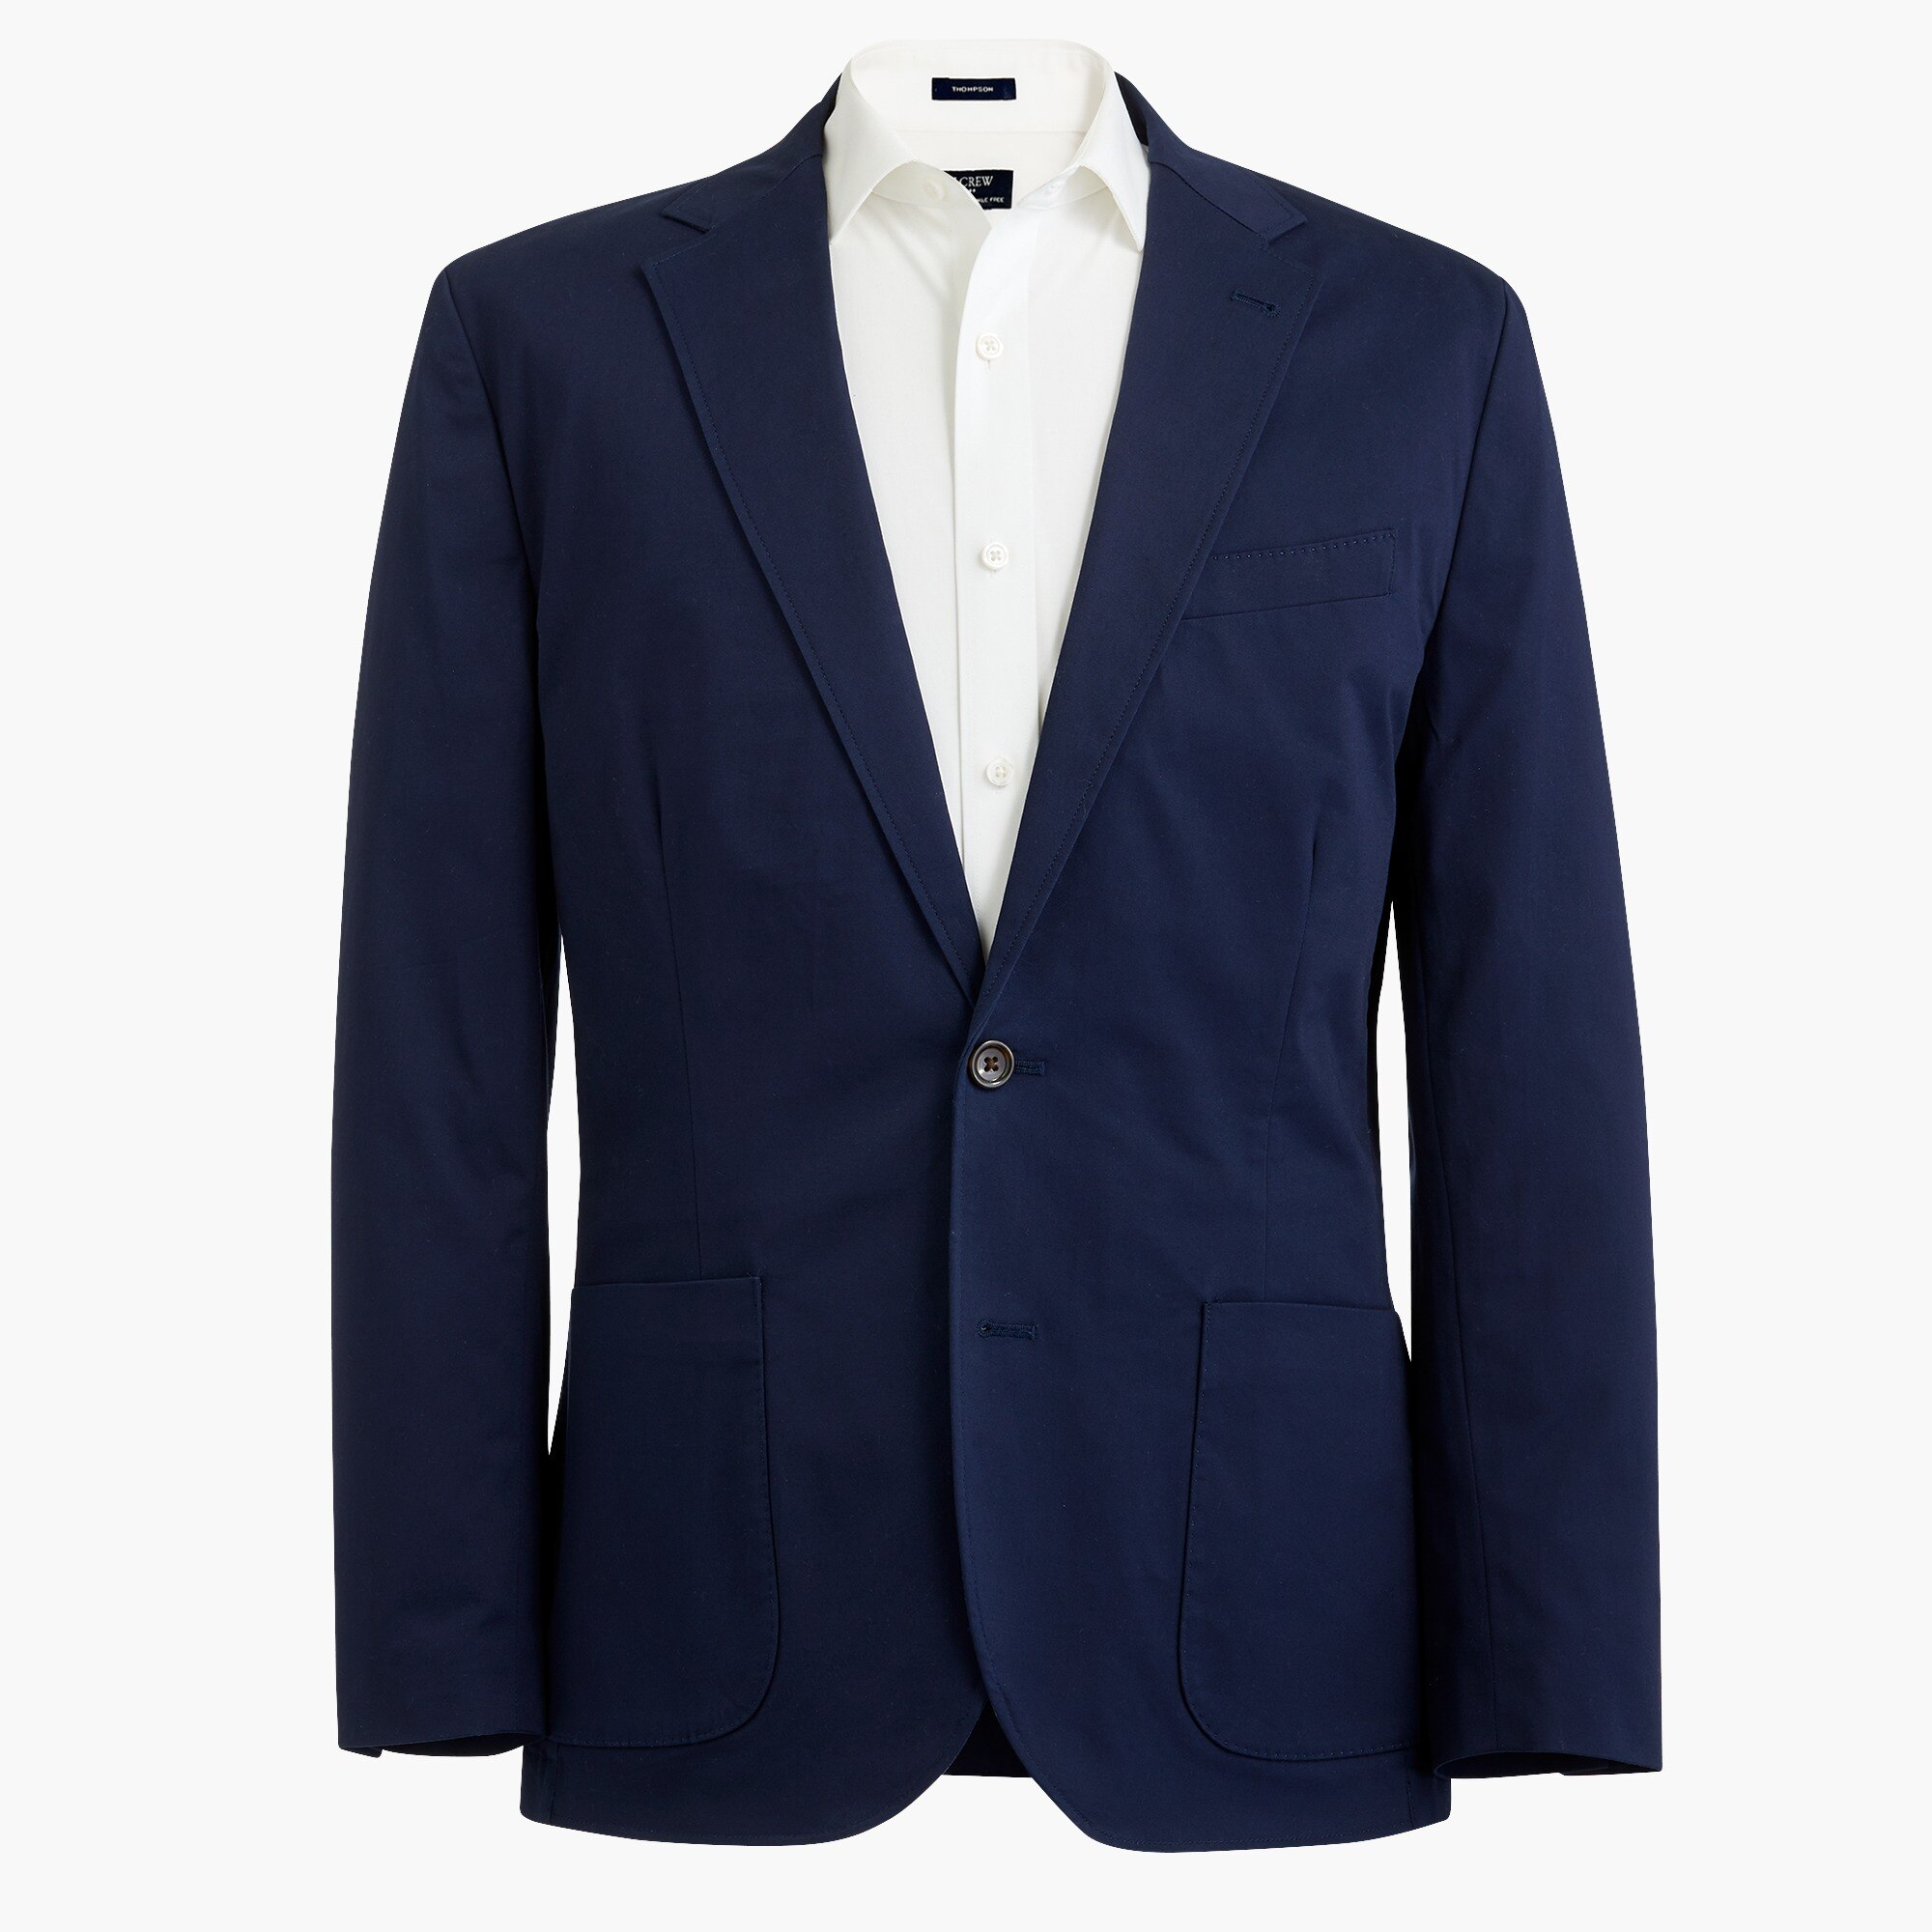 Image 2 for Slim Thompson unstructured blazer in flex chino